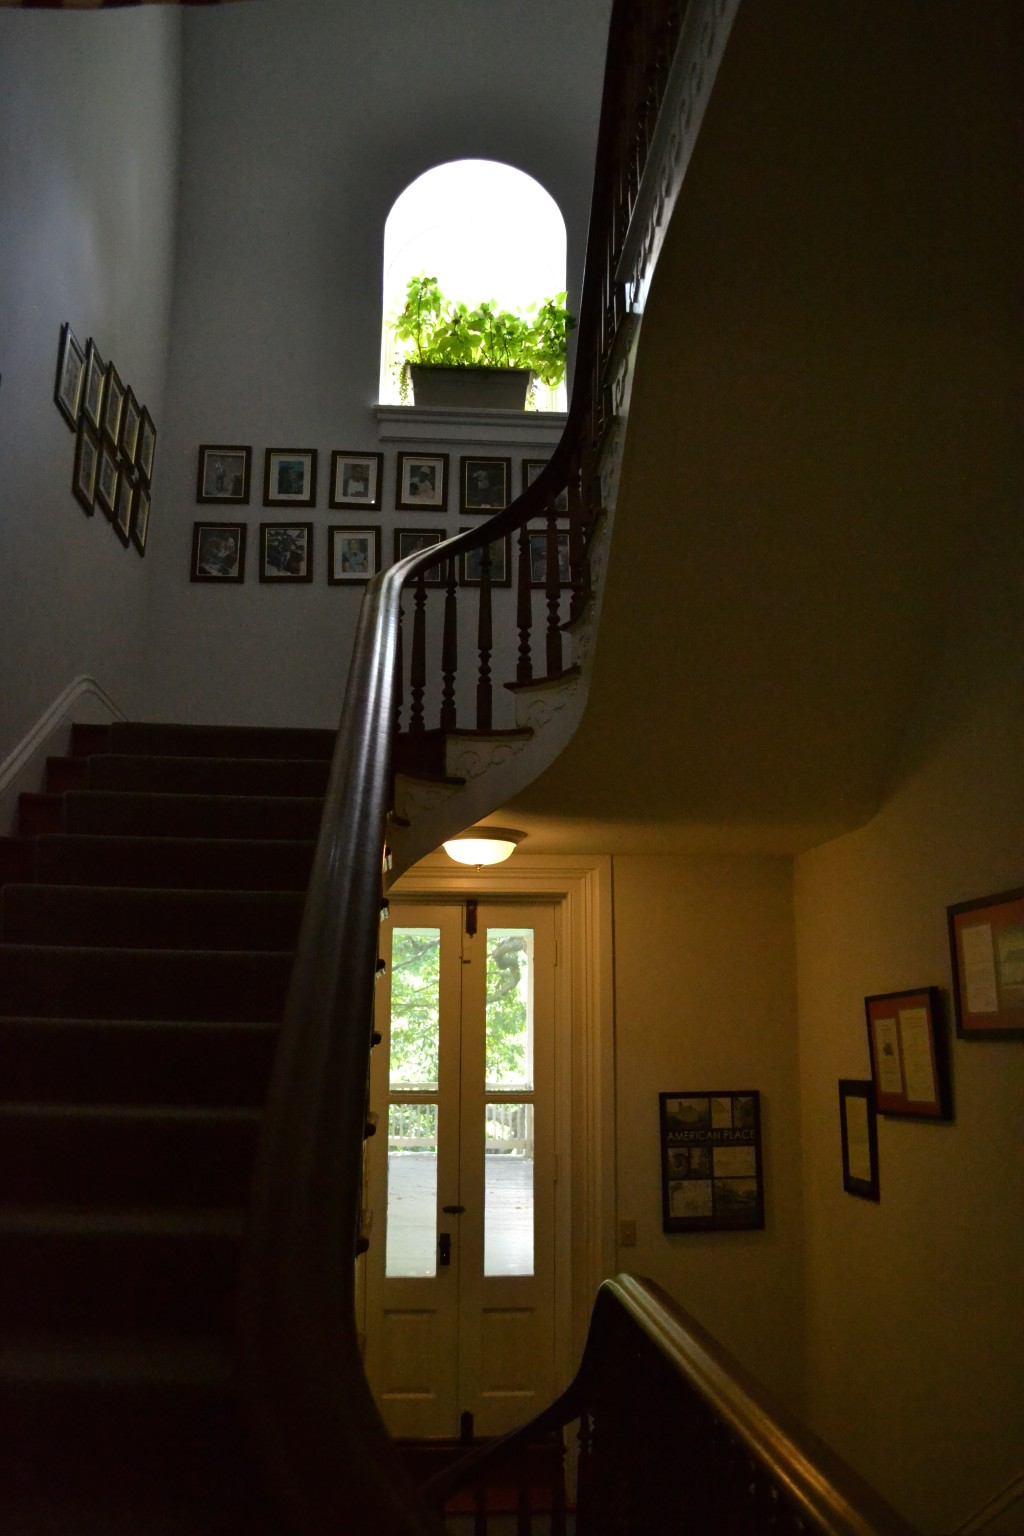 The stairway as it ascends from the second to the third floor.